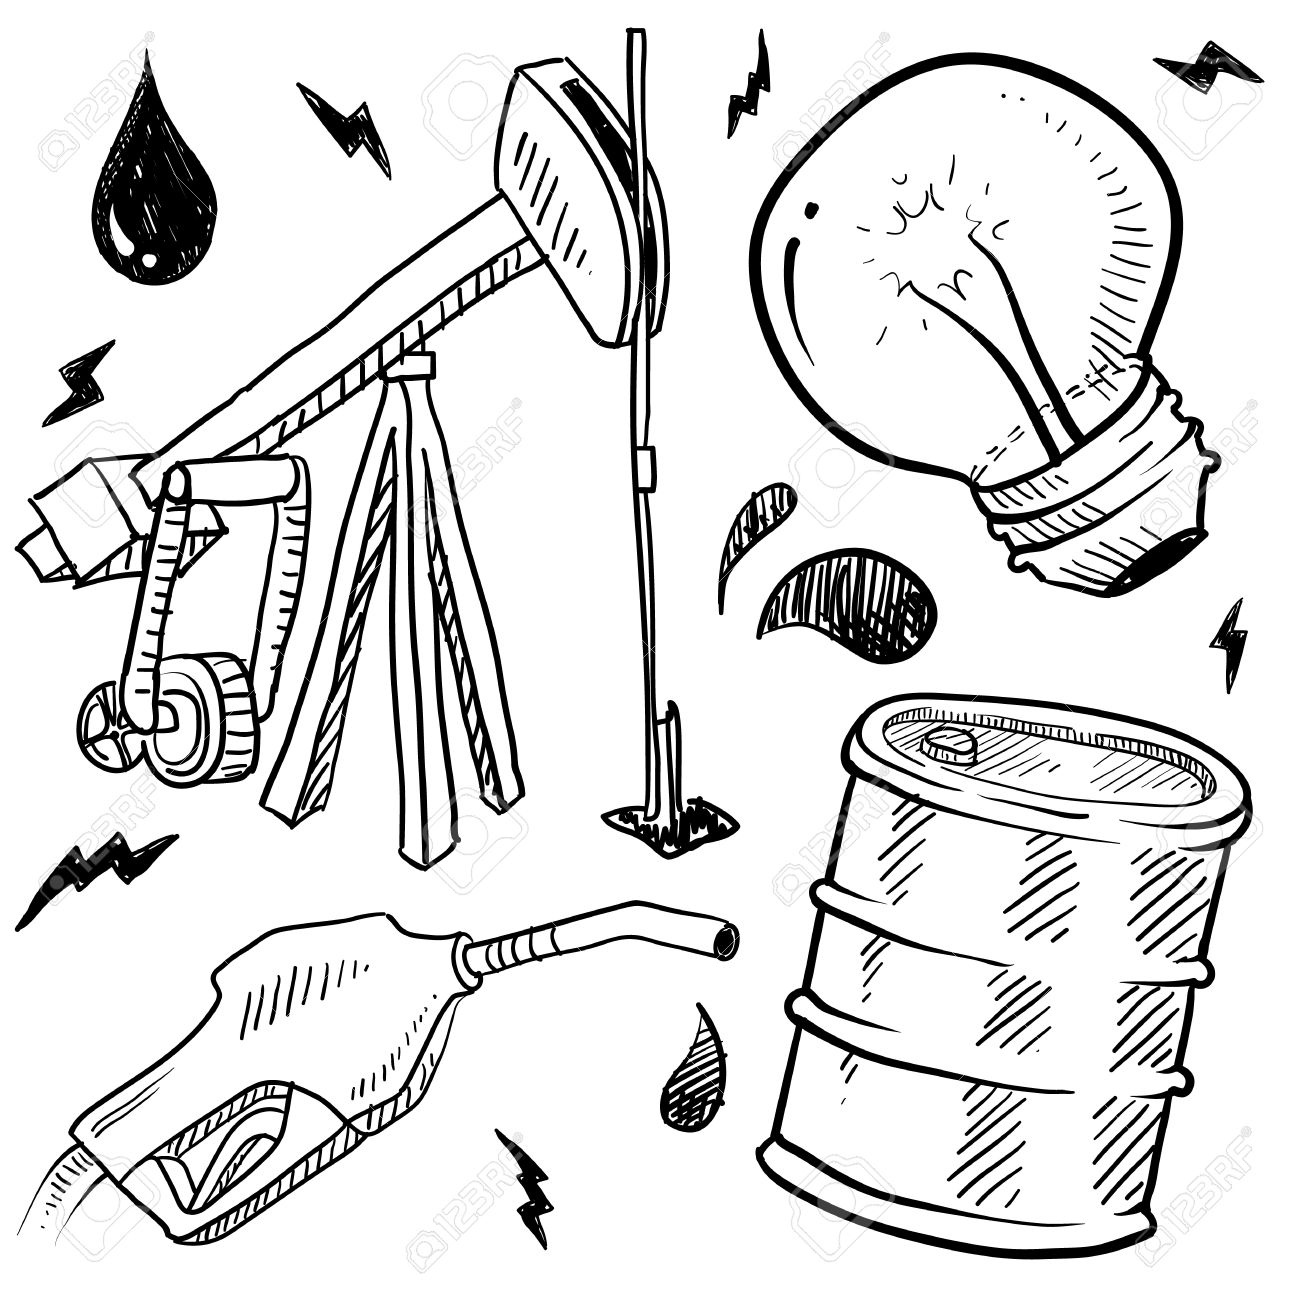 Doodle Style Oil And Gas Energy Sketch In Vector Format Set.